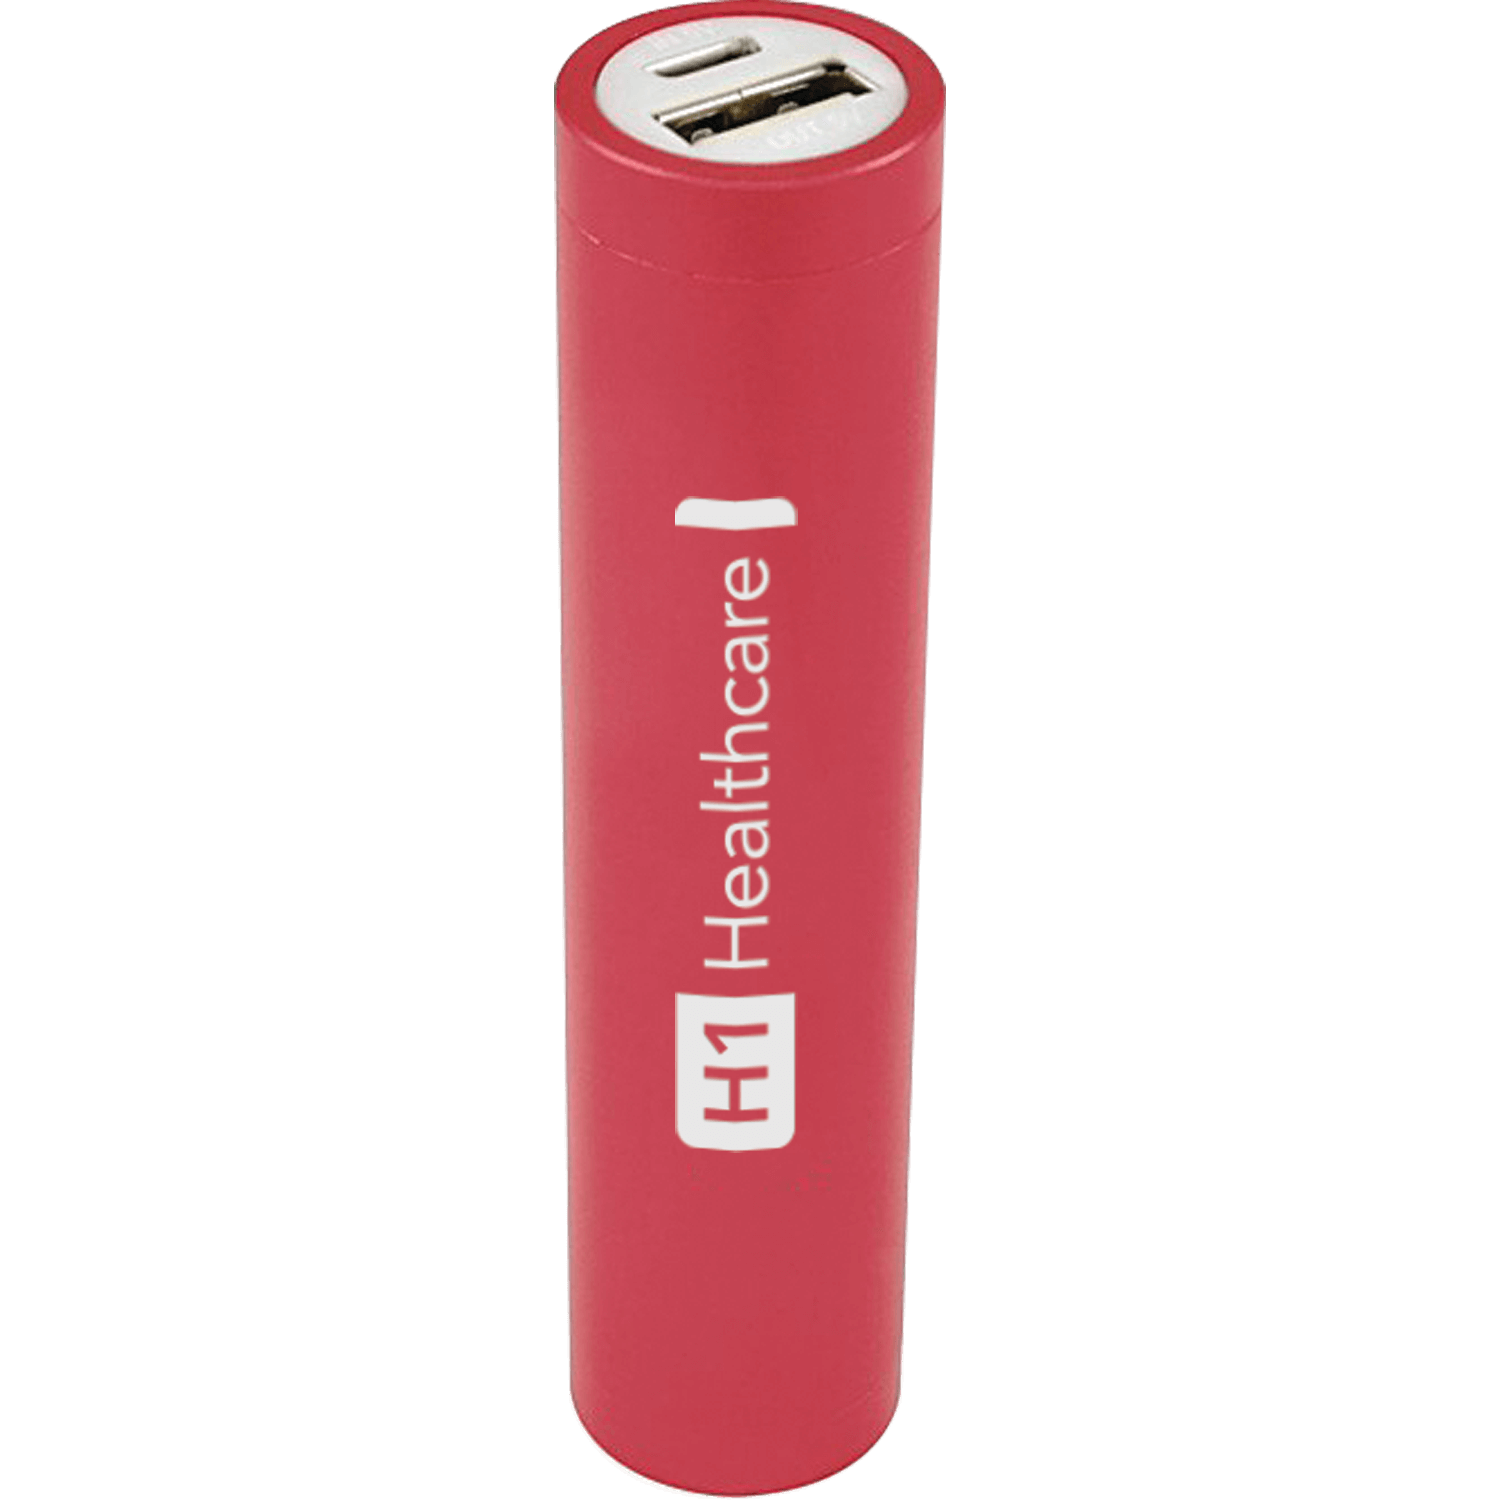 3 Day Cylinder Power Bank 2600mAh